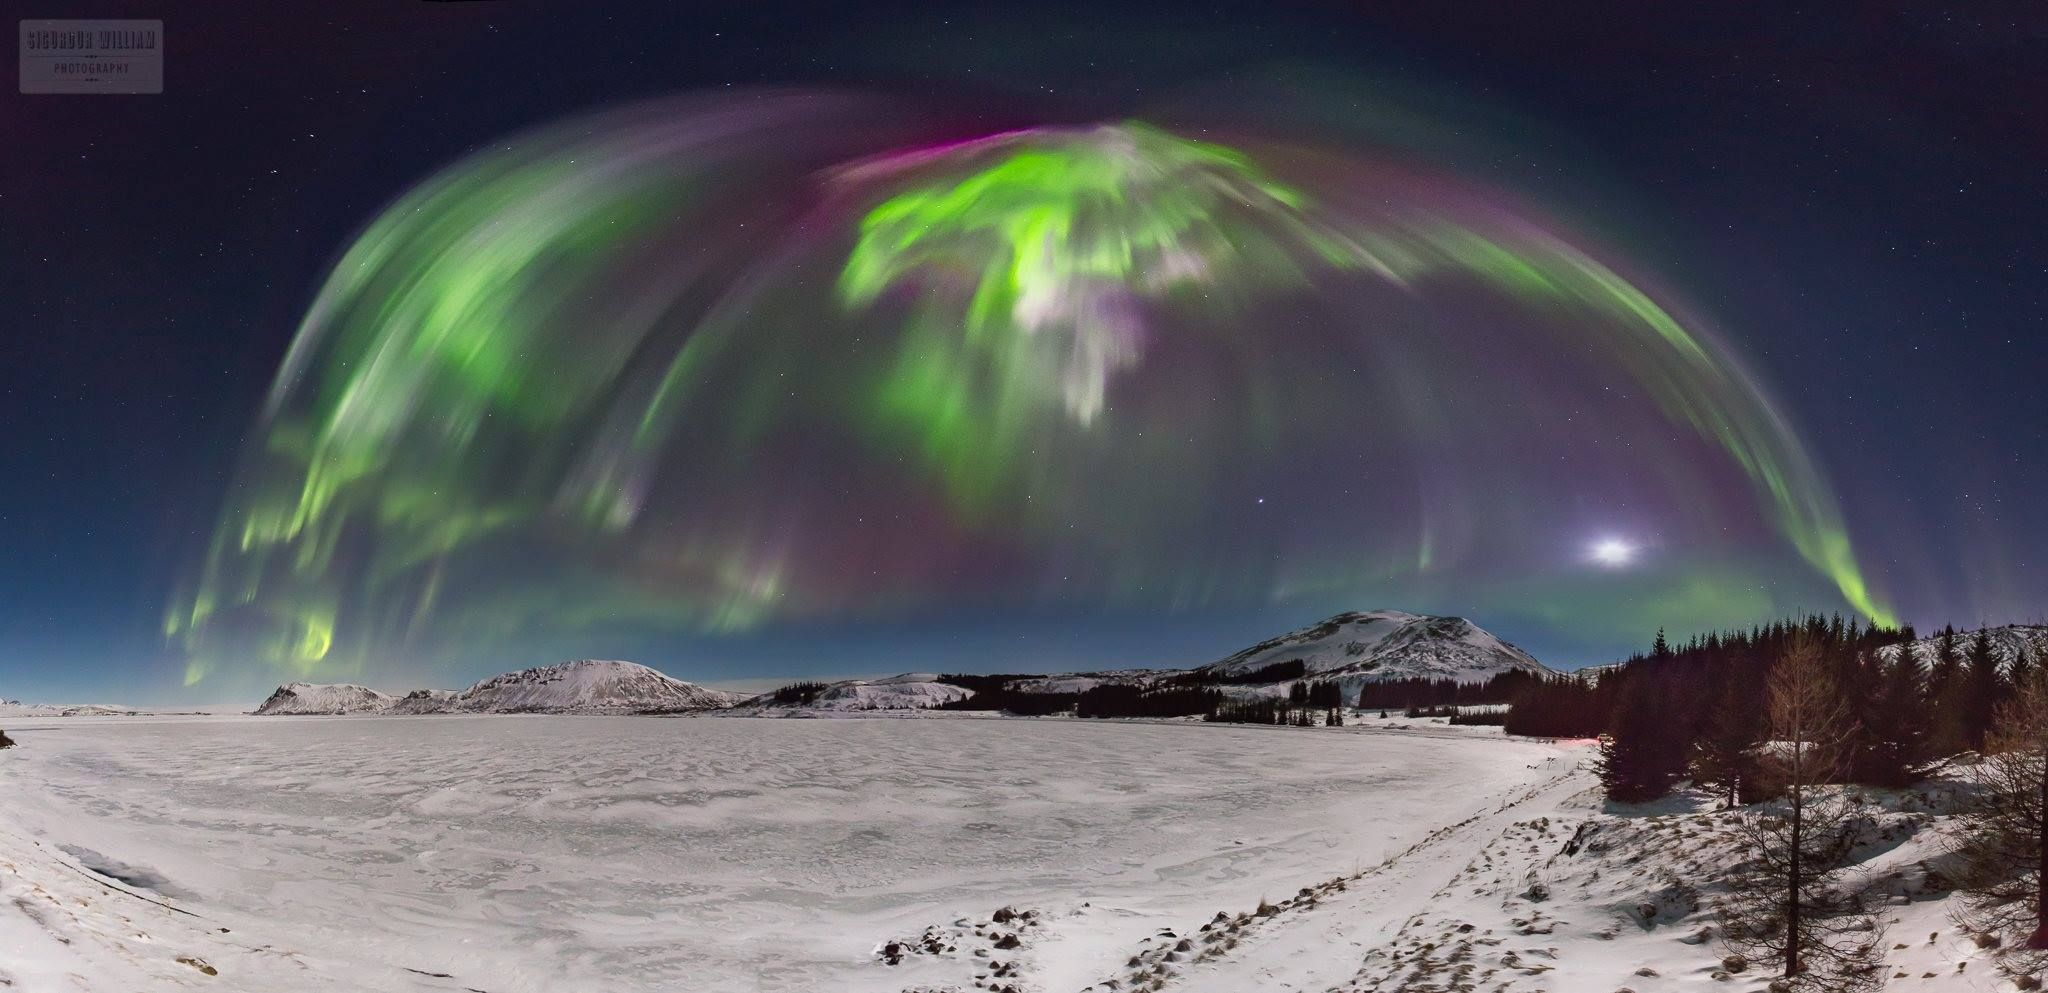 This is what the sky over Thingvellir, Iceland looked like on Saturday night. Simply stunning! Tag someone you'd like to witness this with.  Thanks to Sigurður William Photography for capturing this beautiful sight!